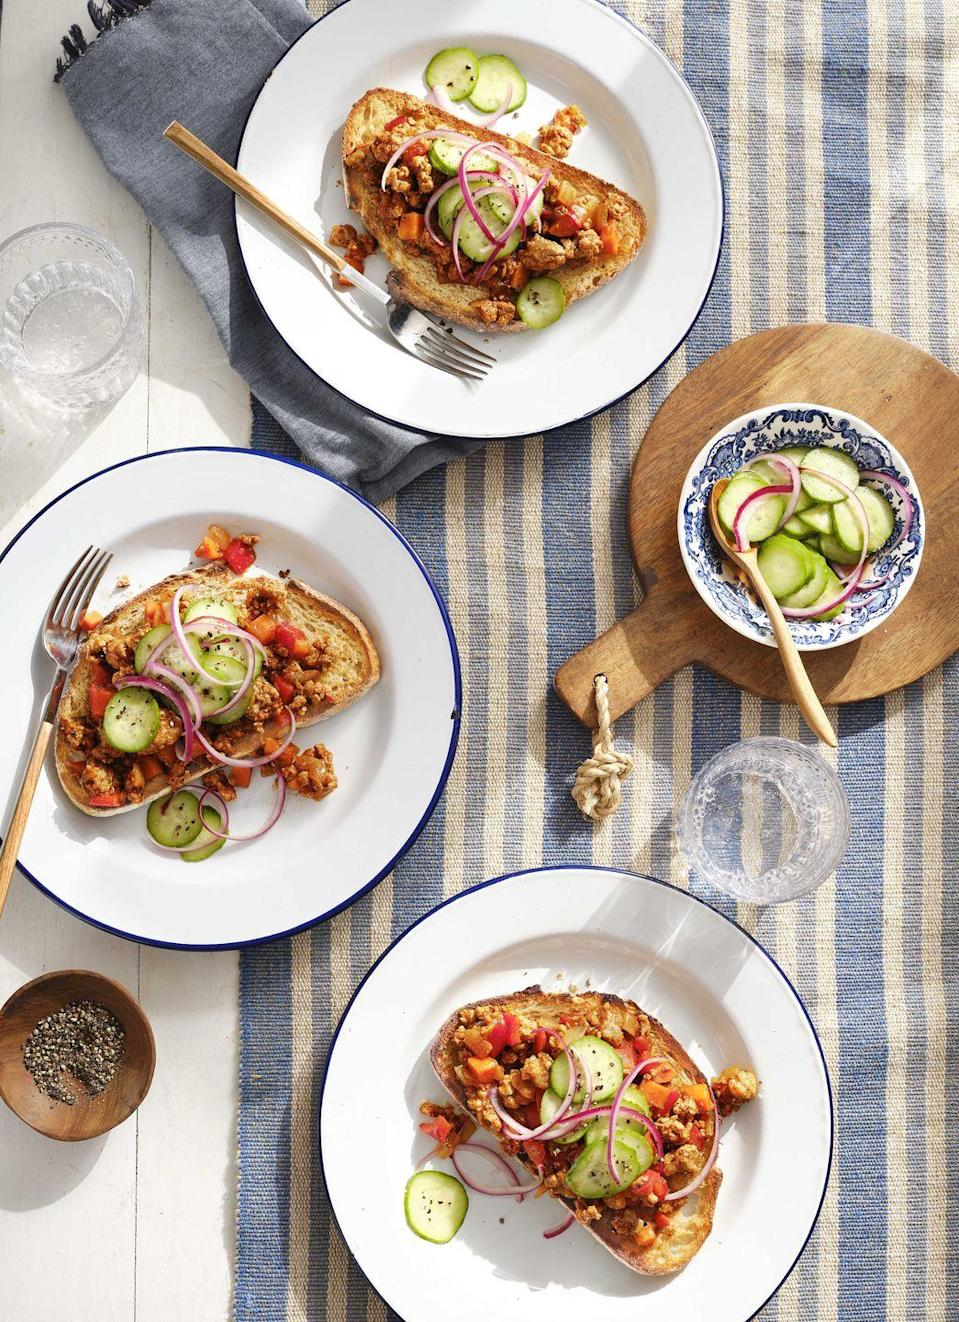 """<p>The kids will come running when you serve-up this fast version of a perennial favorite. Ground turkey or chicken replaces the usual ground beef, and a fresh cucumber onion relish tops it all off!</p><p><strong><a href=""""https://www.countryliving.com/food-drinks/a30417966/ground-turkey-sloppy-joes-recipe/"""" rel=""""nofollow noopener"""" target=""""_blank"""" data-ylk=""""slk:Get the recipe"""" class=""""link rapid-noclick-resp"""">Get the recipe</a>.</strong> </p>"""